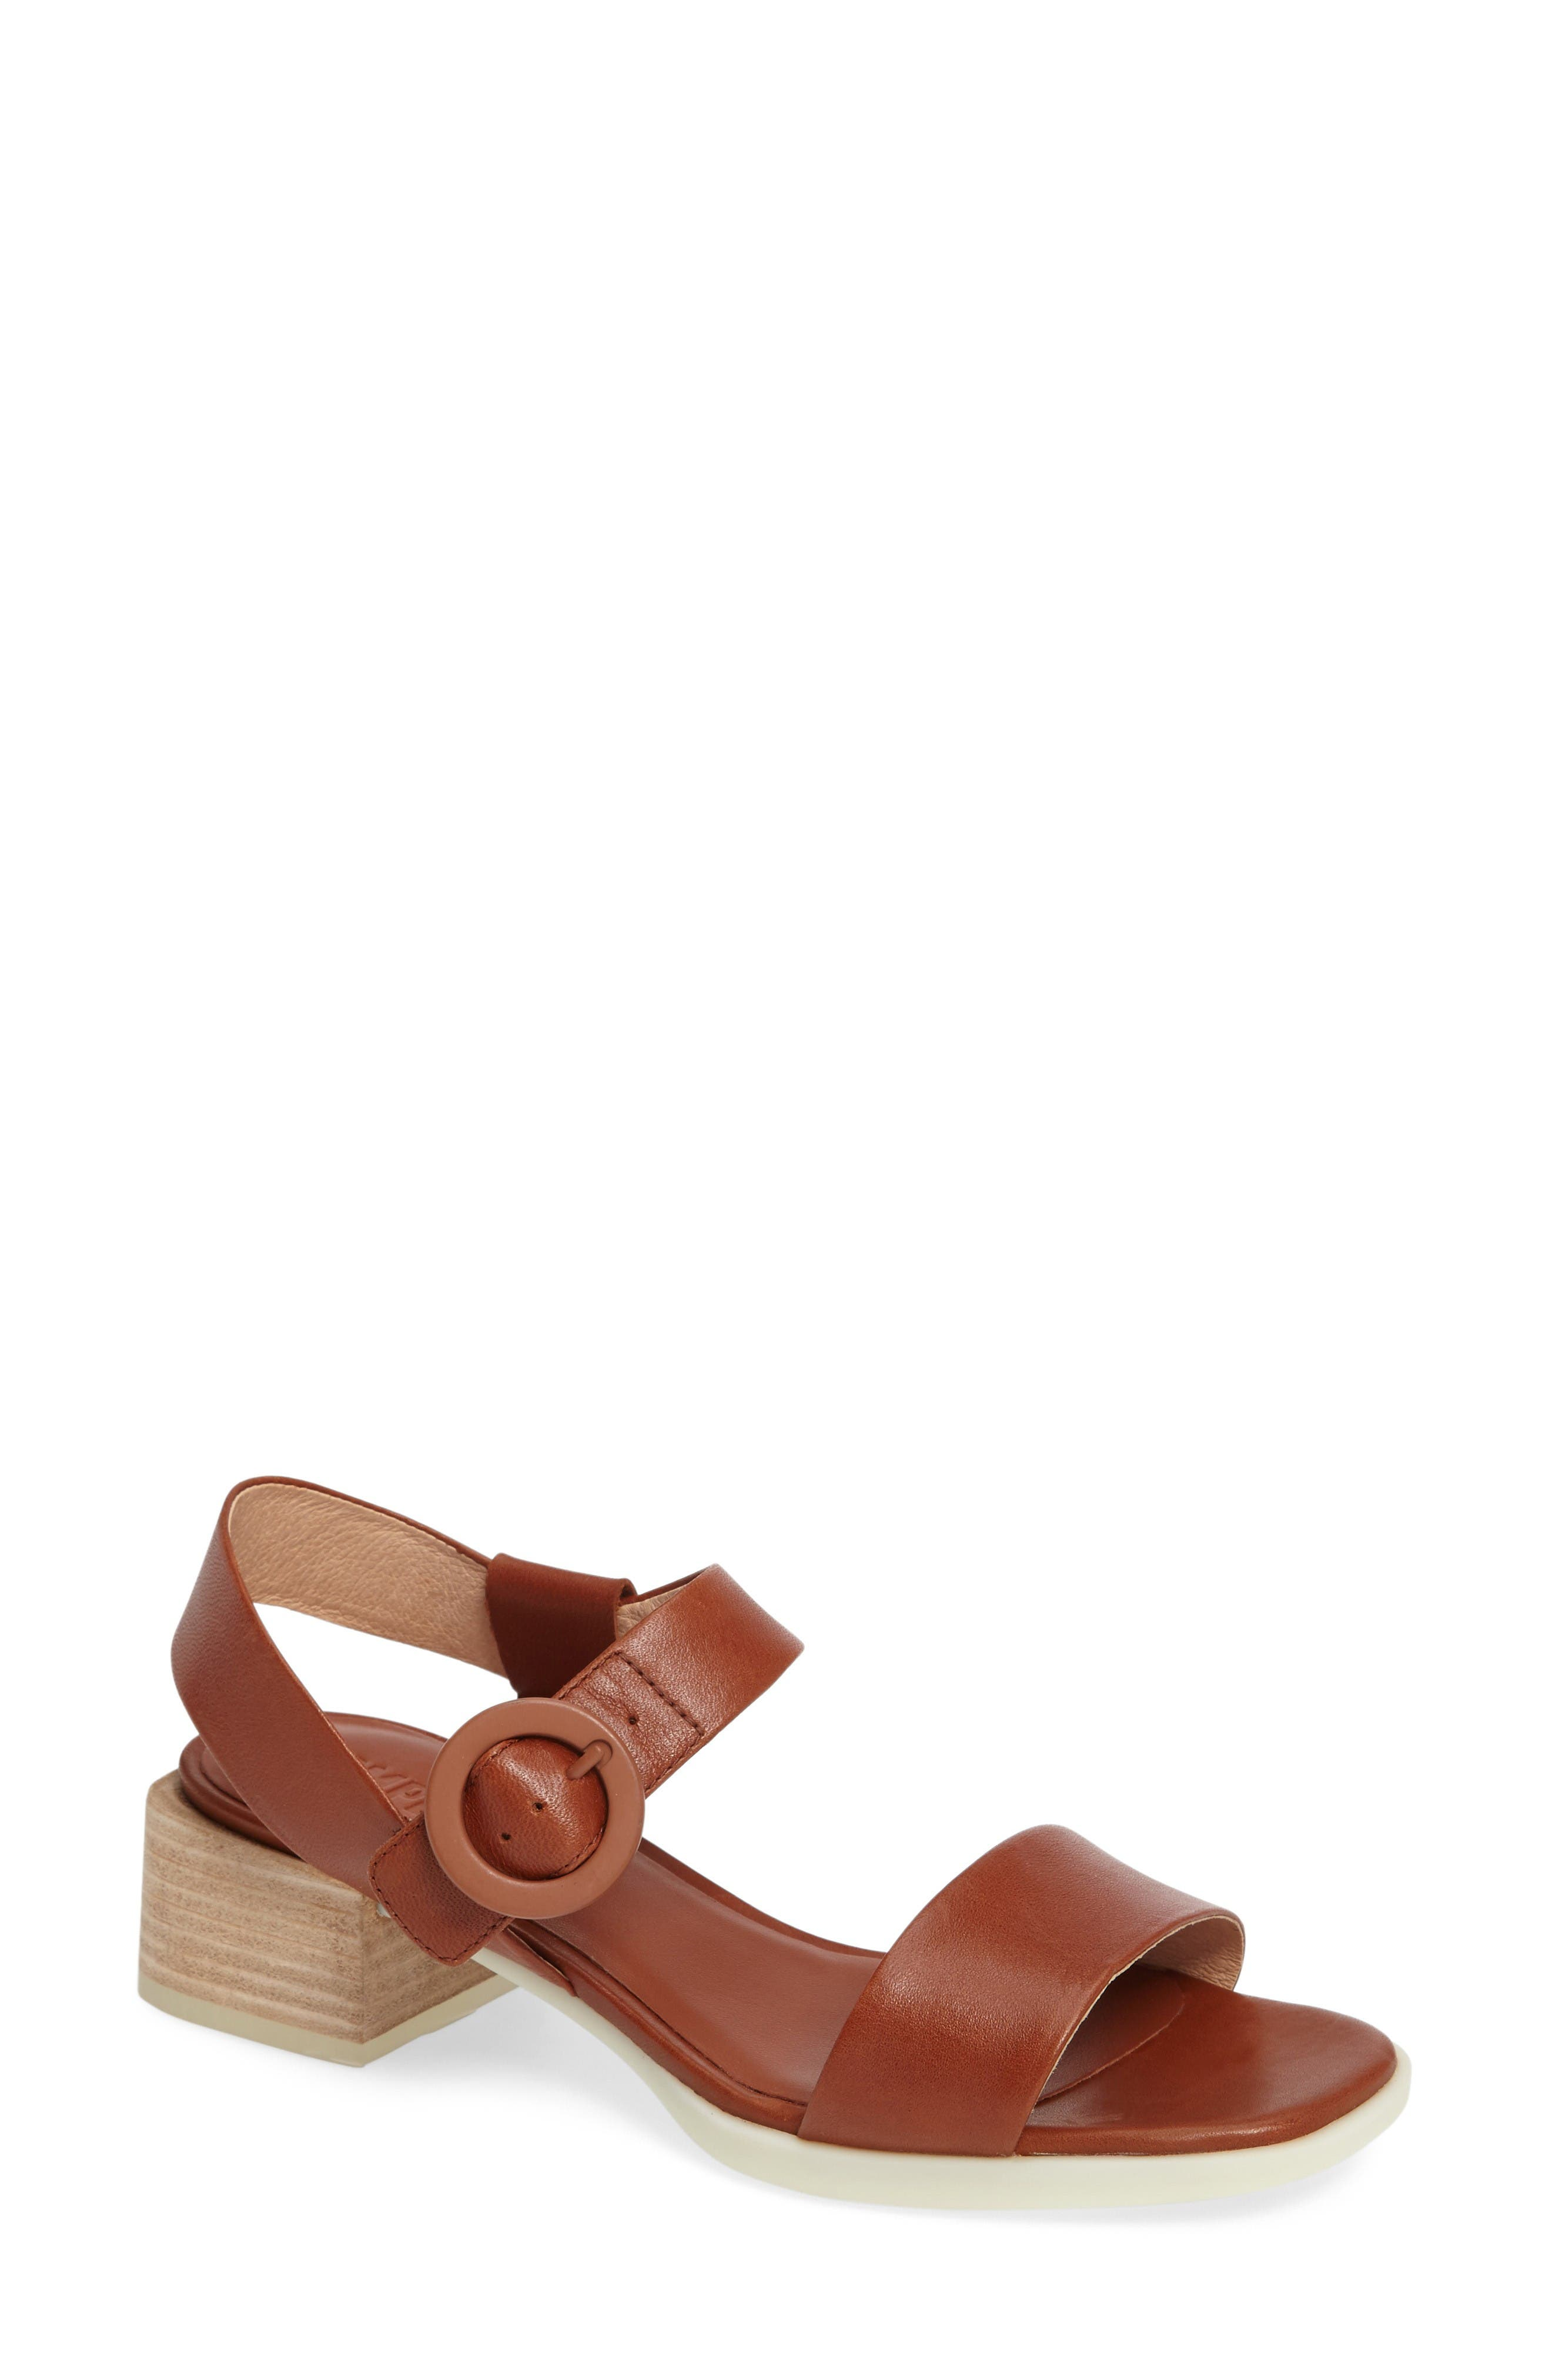 Kobo Buckle Strap Sandal,                         Main,                         color, Brown Leather